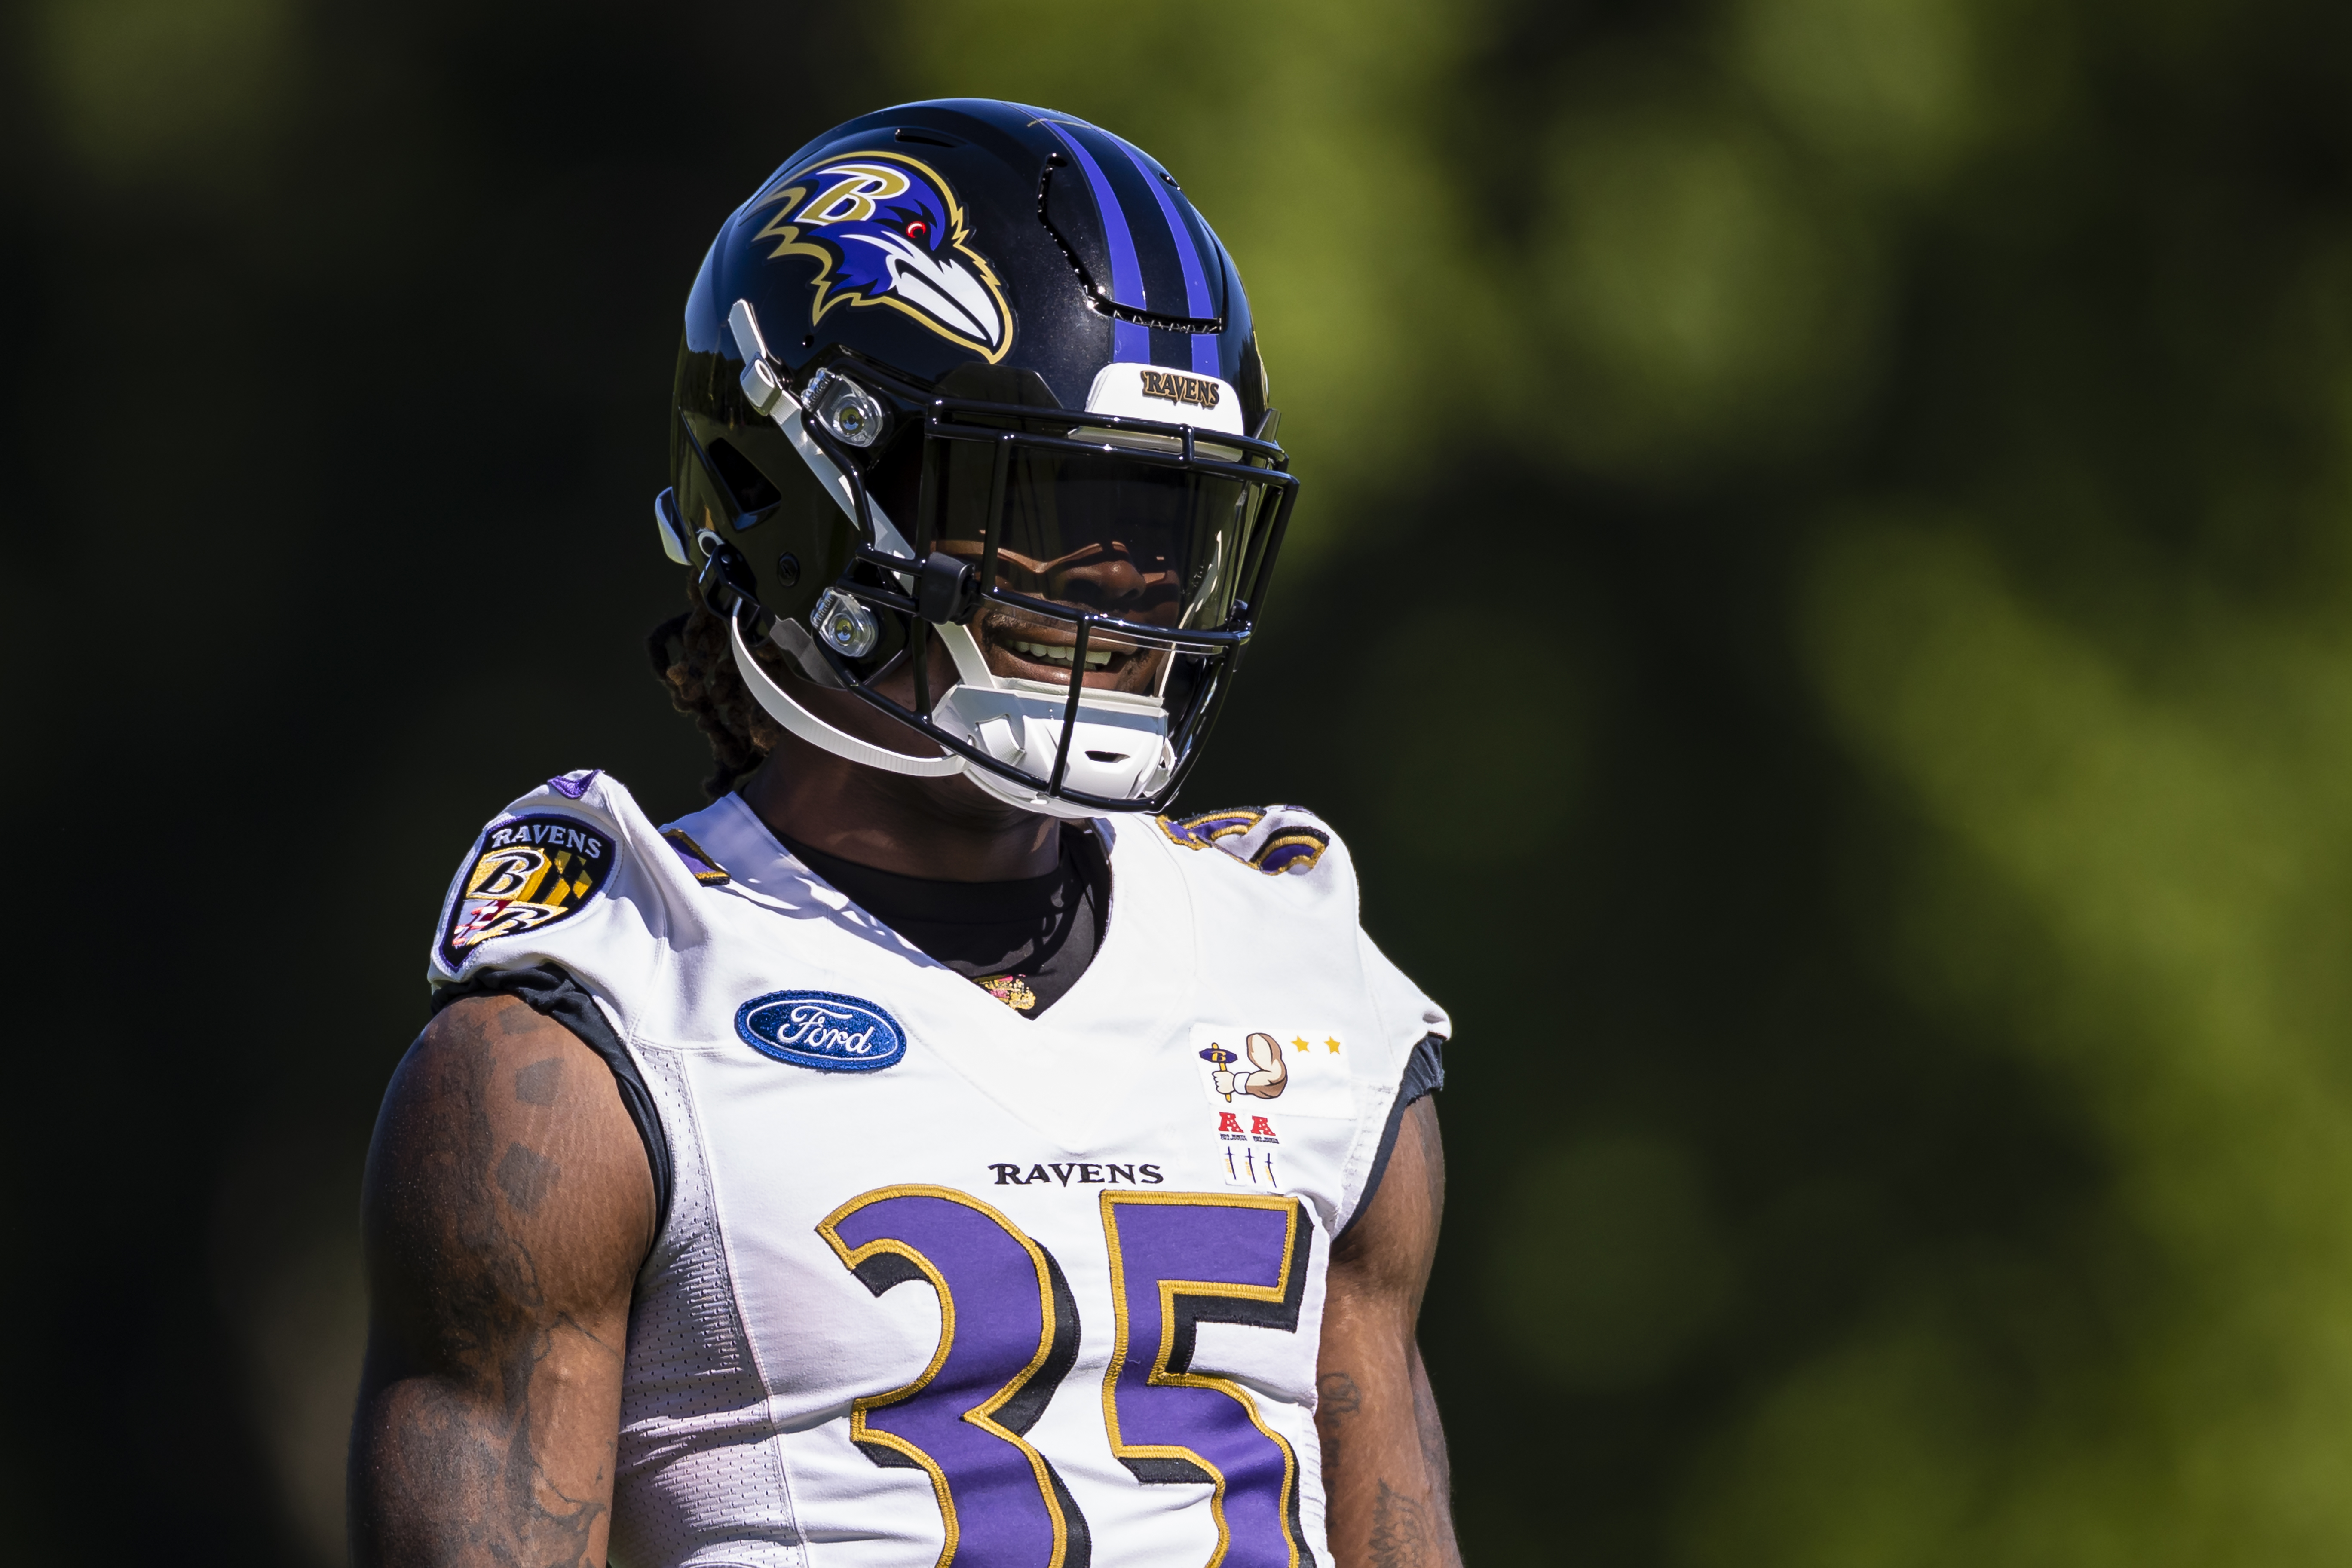 Gus Edwards #35 of the Baltimore Ravens works out during mandatory minicamp at Under Armour Performance Center on June 16, 2021 in Owings Mills, Maryland.